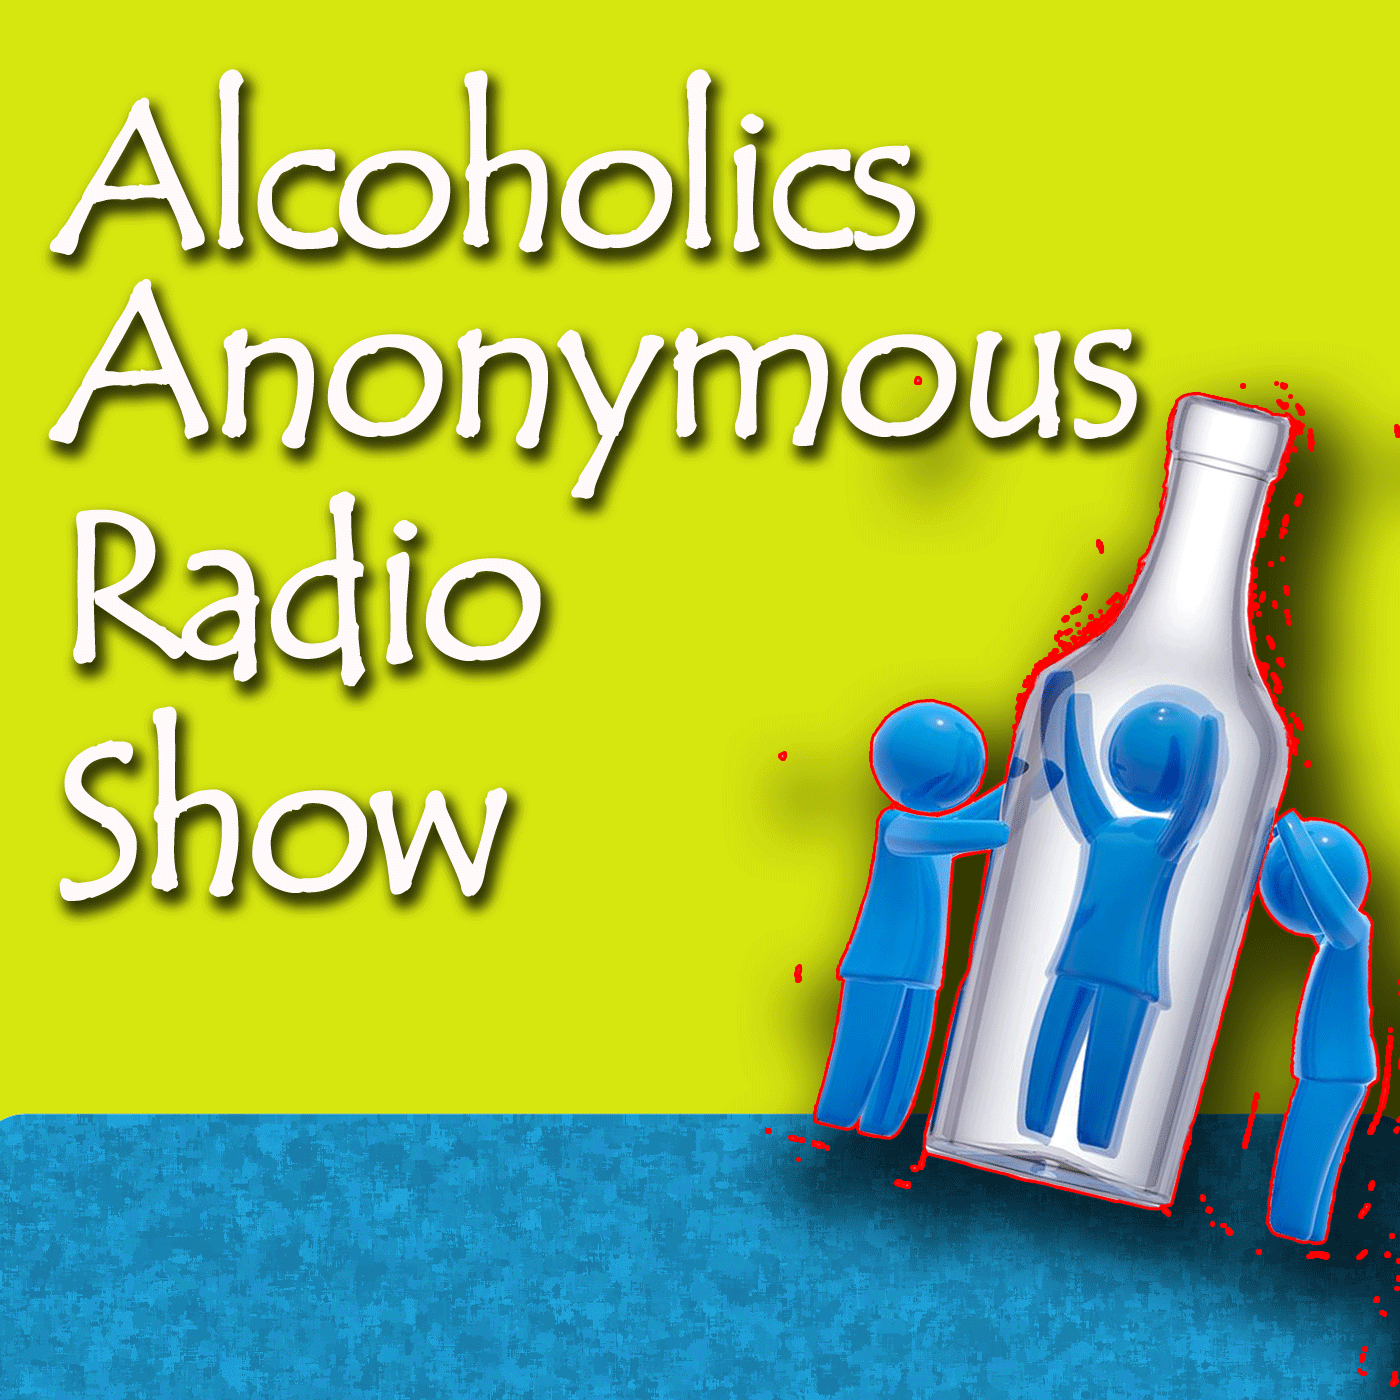 Alcoholics Anonymous Radio Show - Joanna 12 years sober